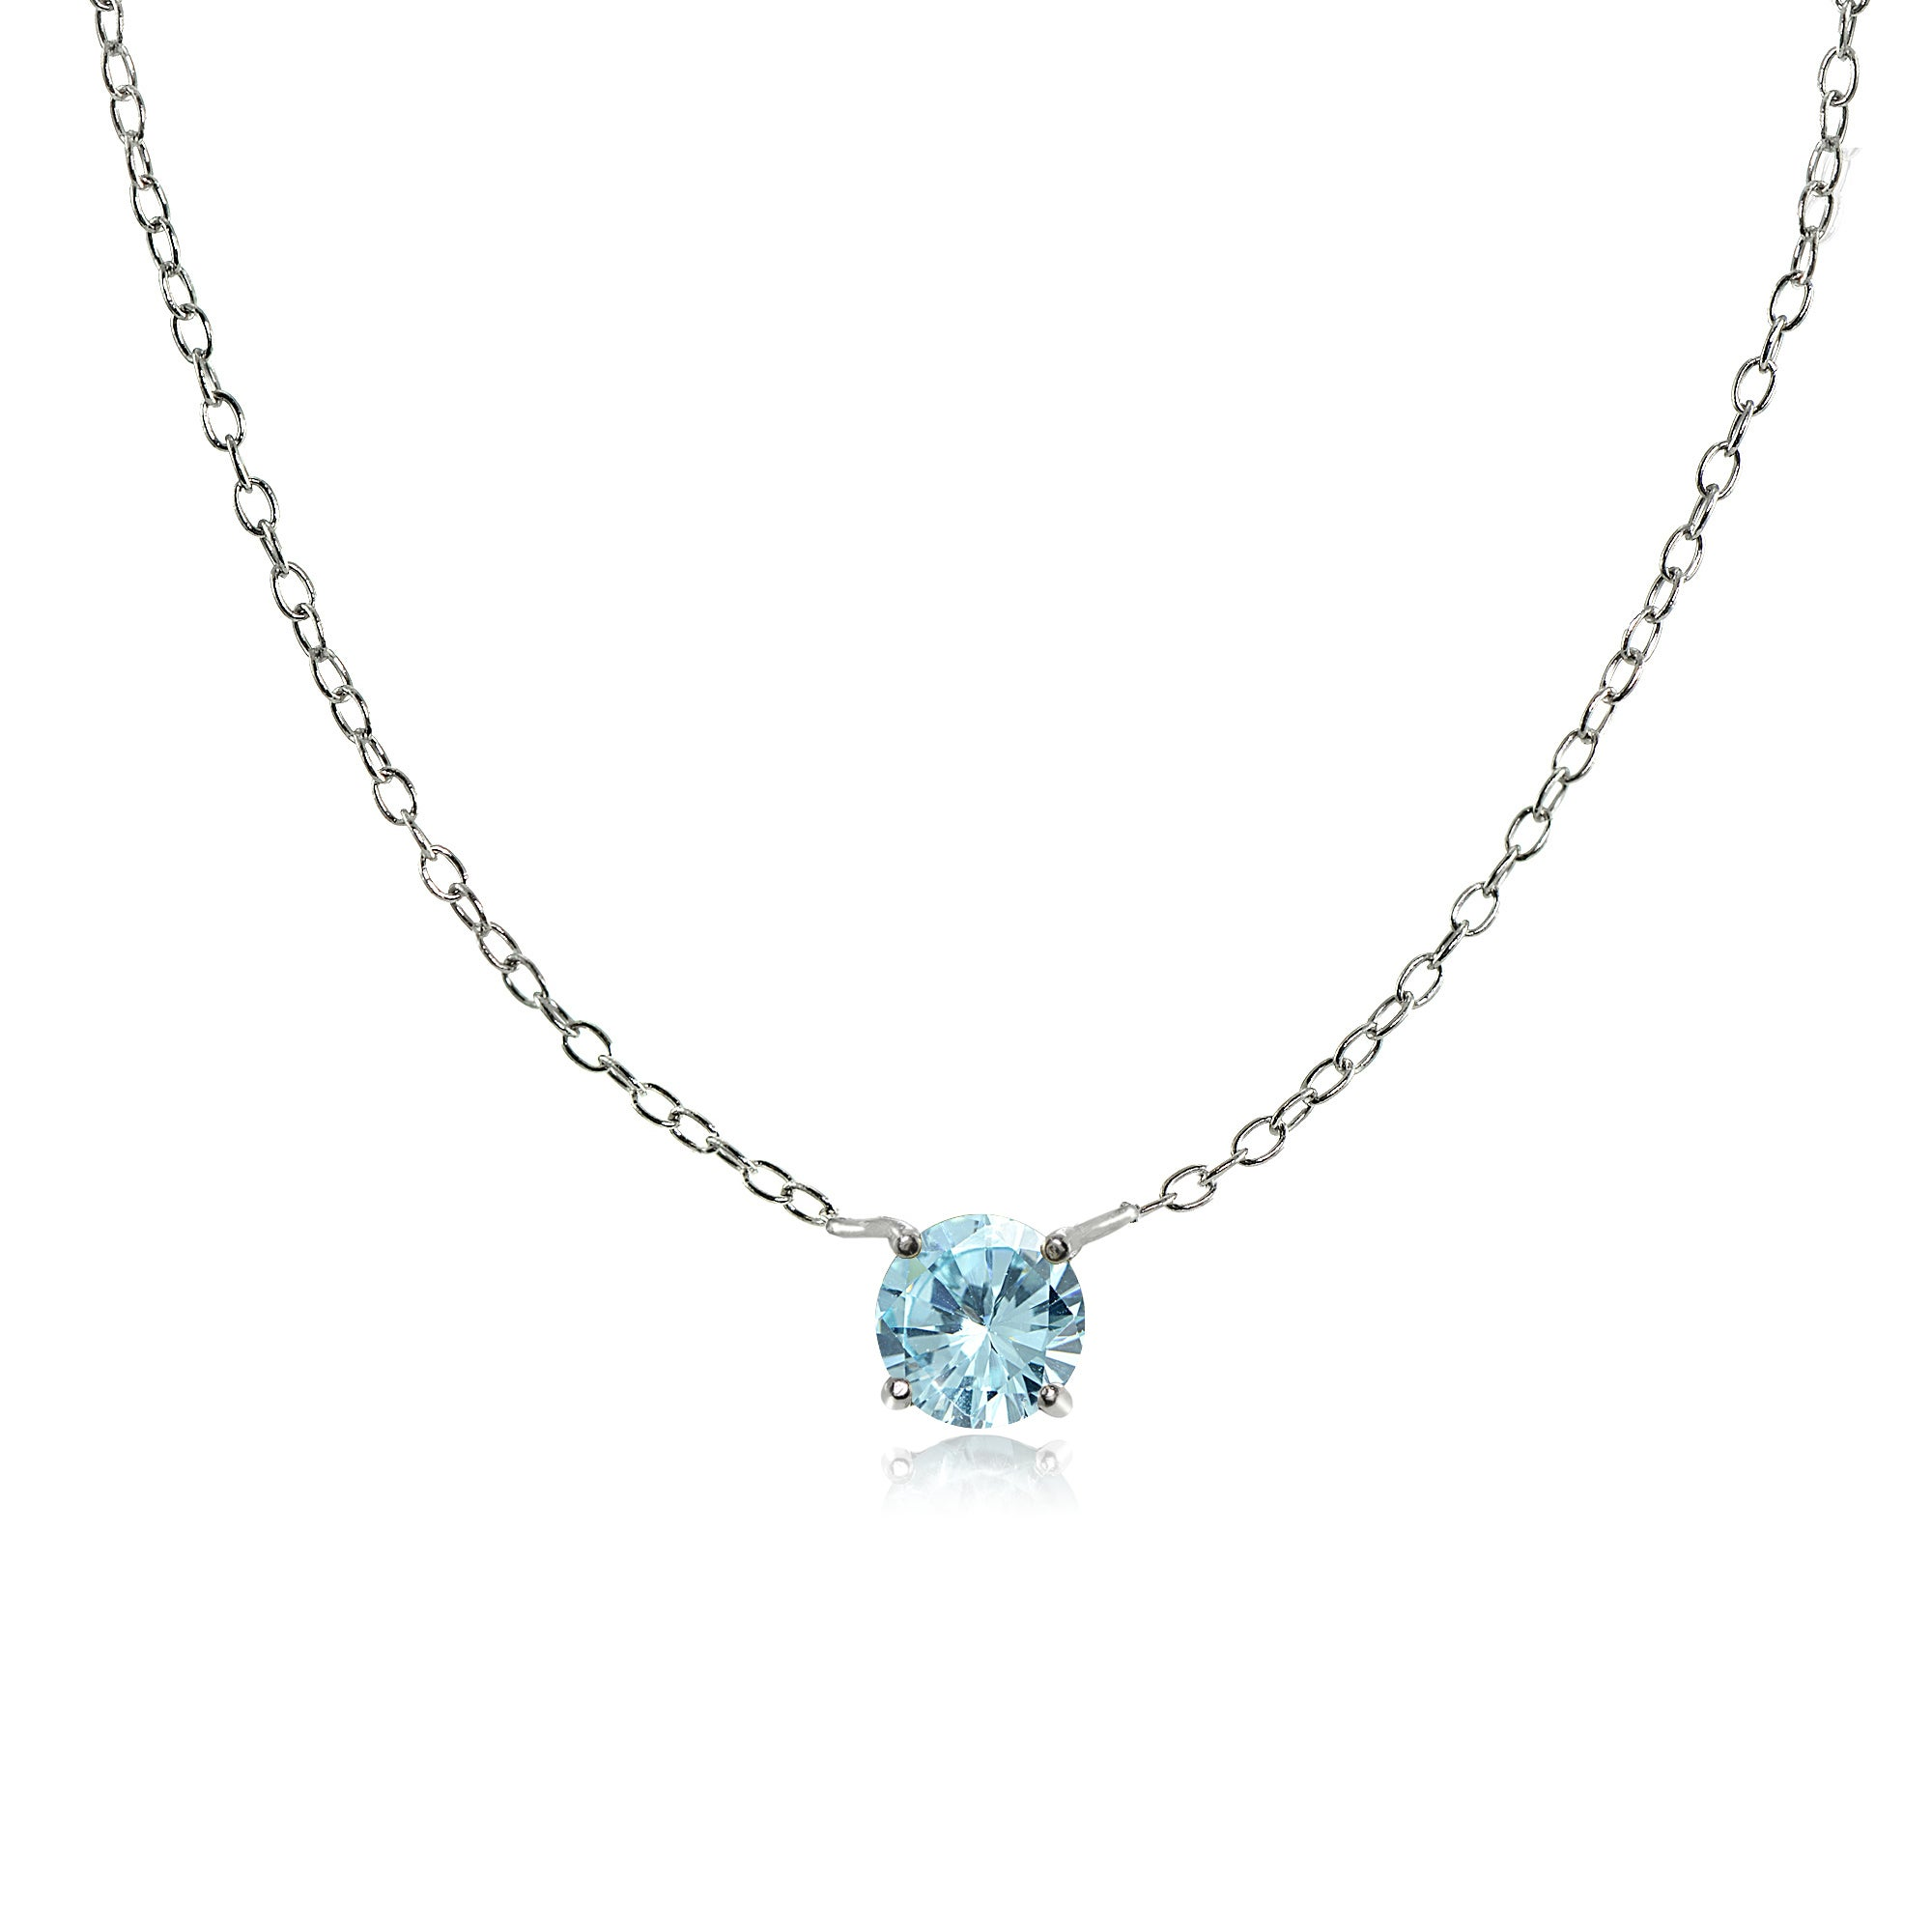 delicate jewelry gemstones Handmade in California gift Mini silver crystals necklace